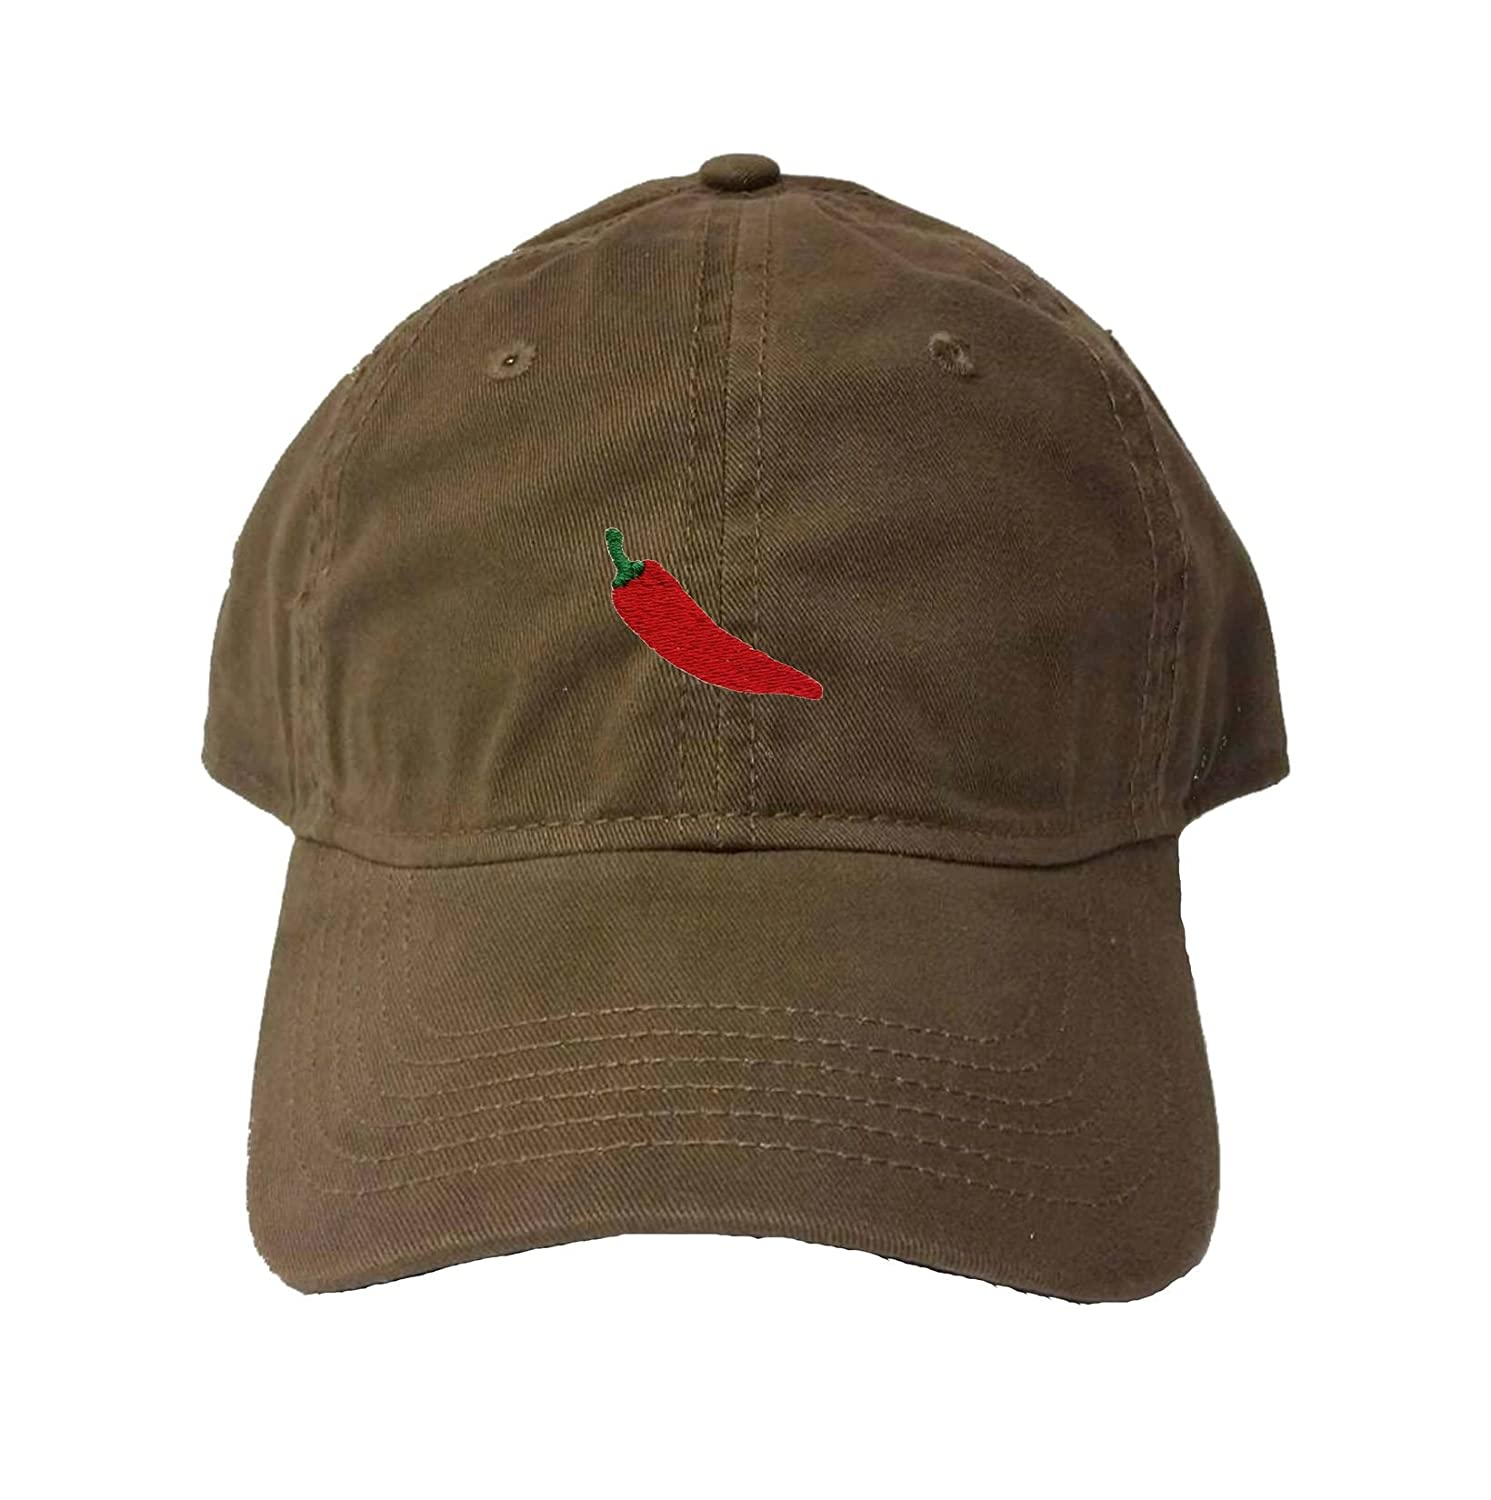 db6d888feea Amazon.com  Adjustable Black Adult Hot Pepper Embroidered Deluxe Dad Hat   Clothing